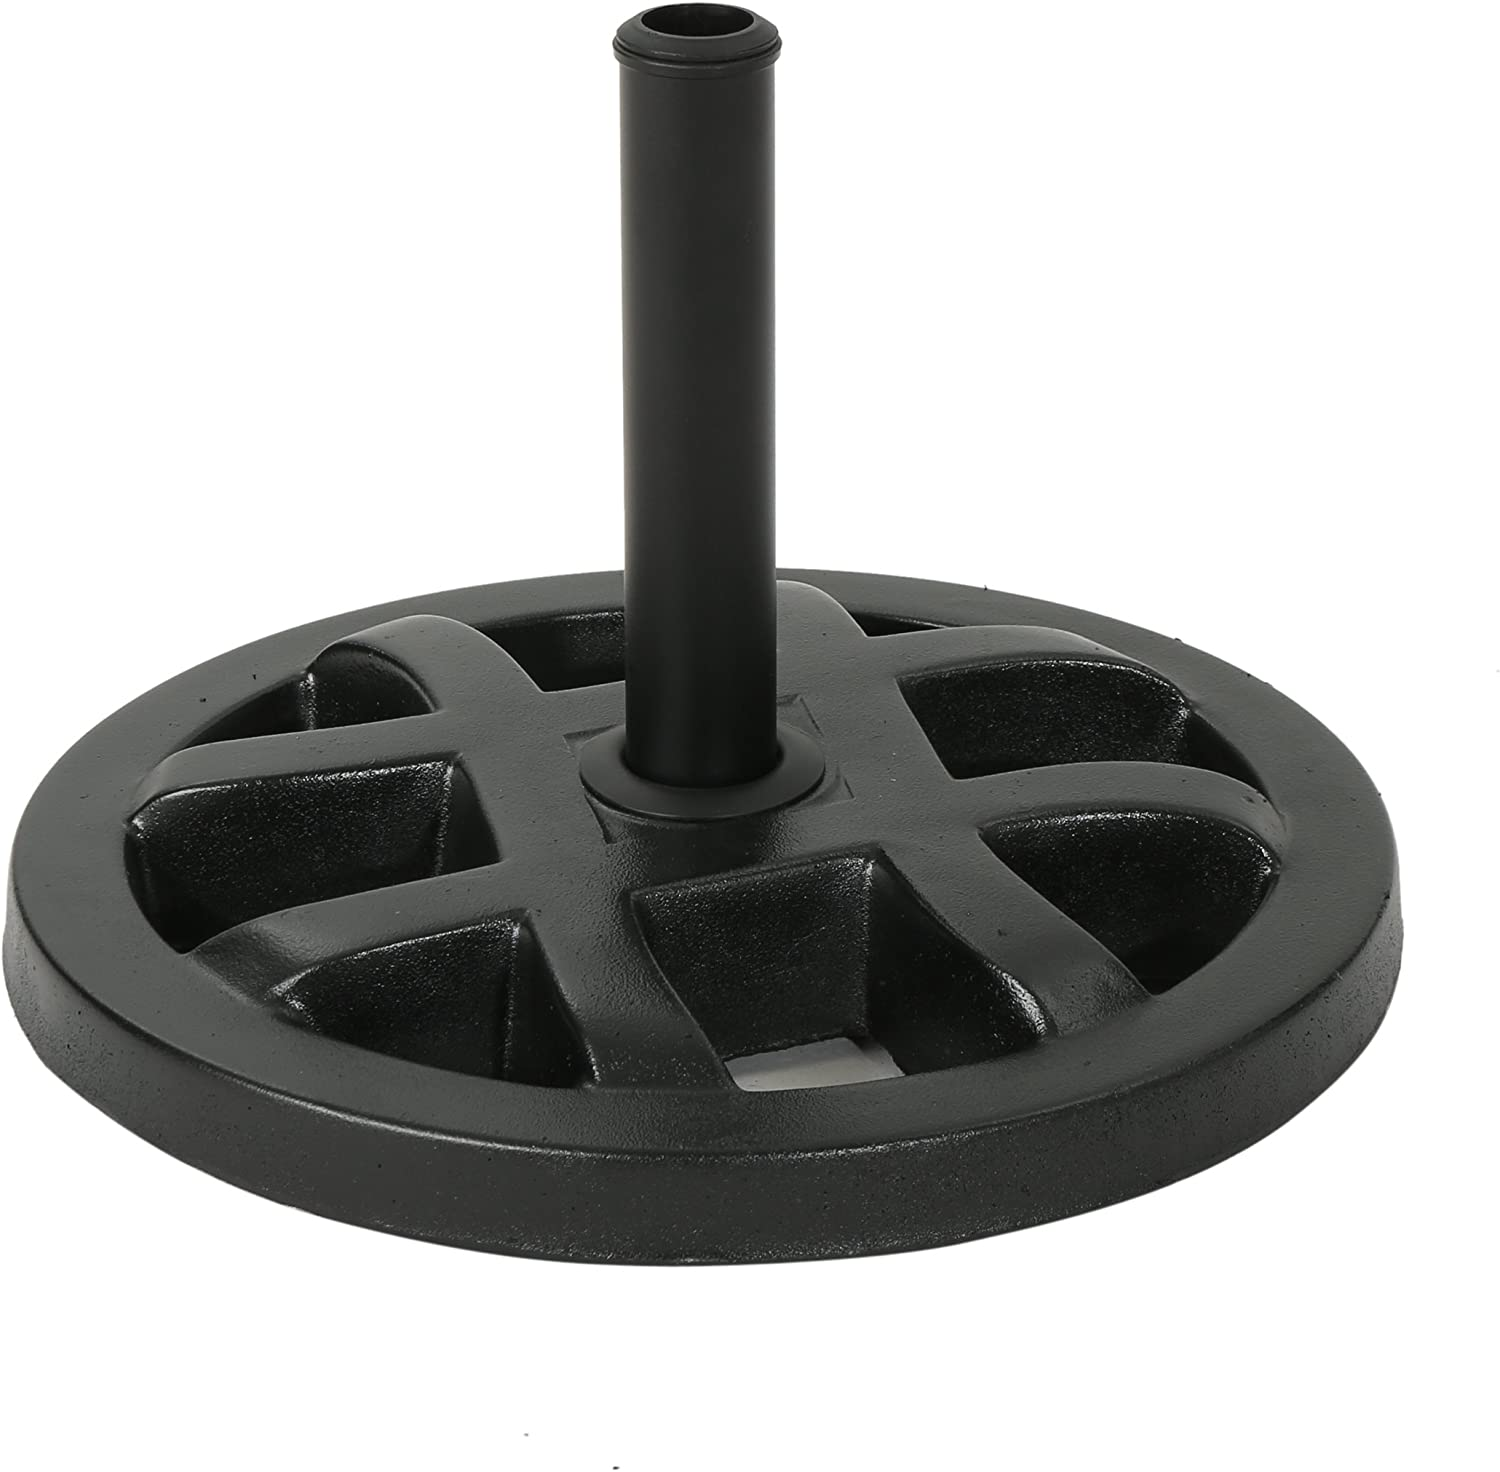 in Polished Black 26LBS Outdoor Concrete Circular Umbrella Base Christopher Knight Home  Cassie